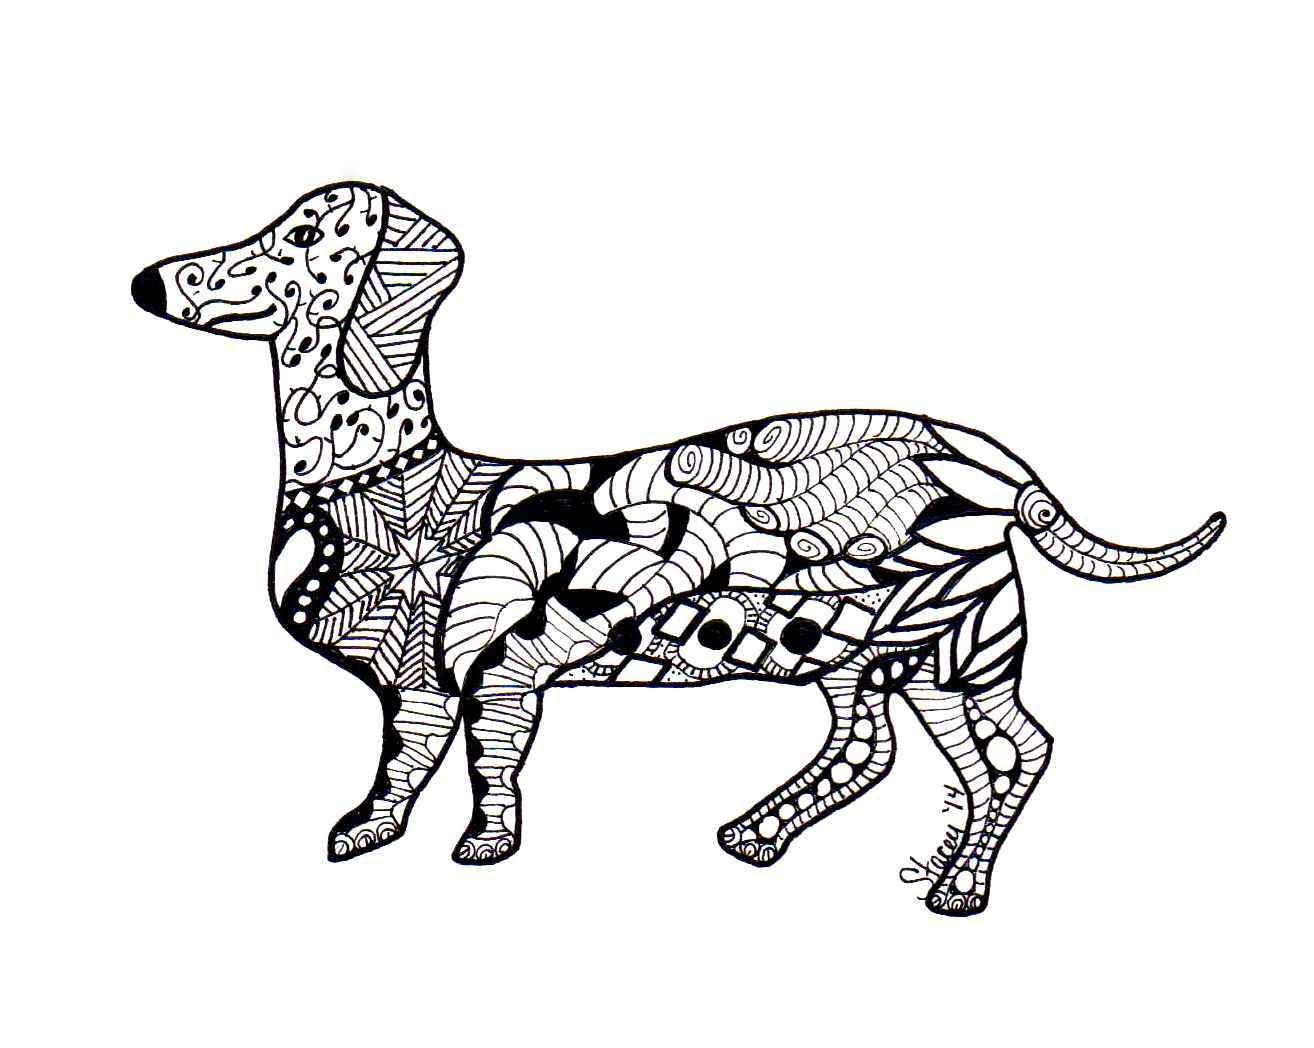 Zentangle Dachshund With Images Dog Coloring Page Animal